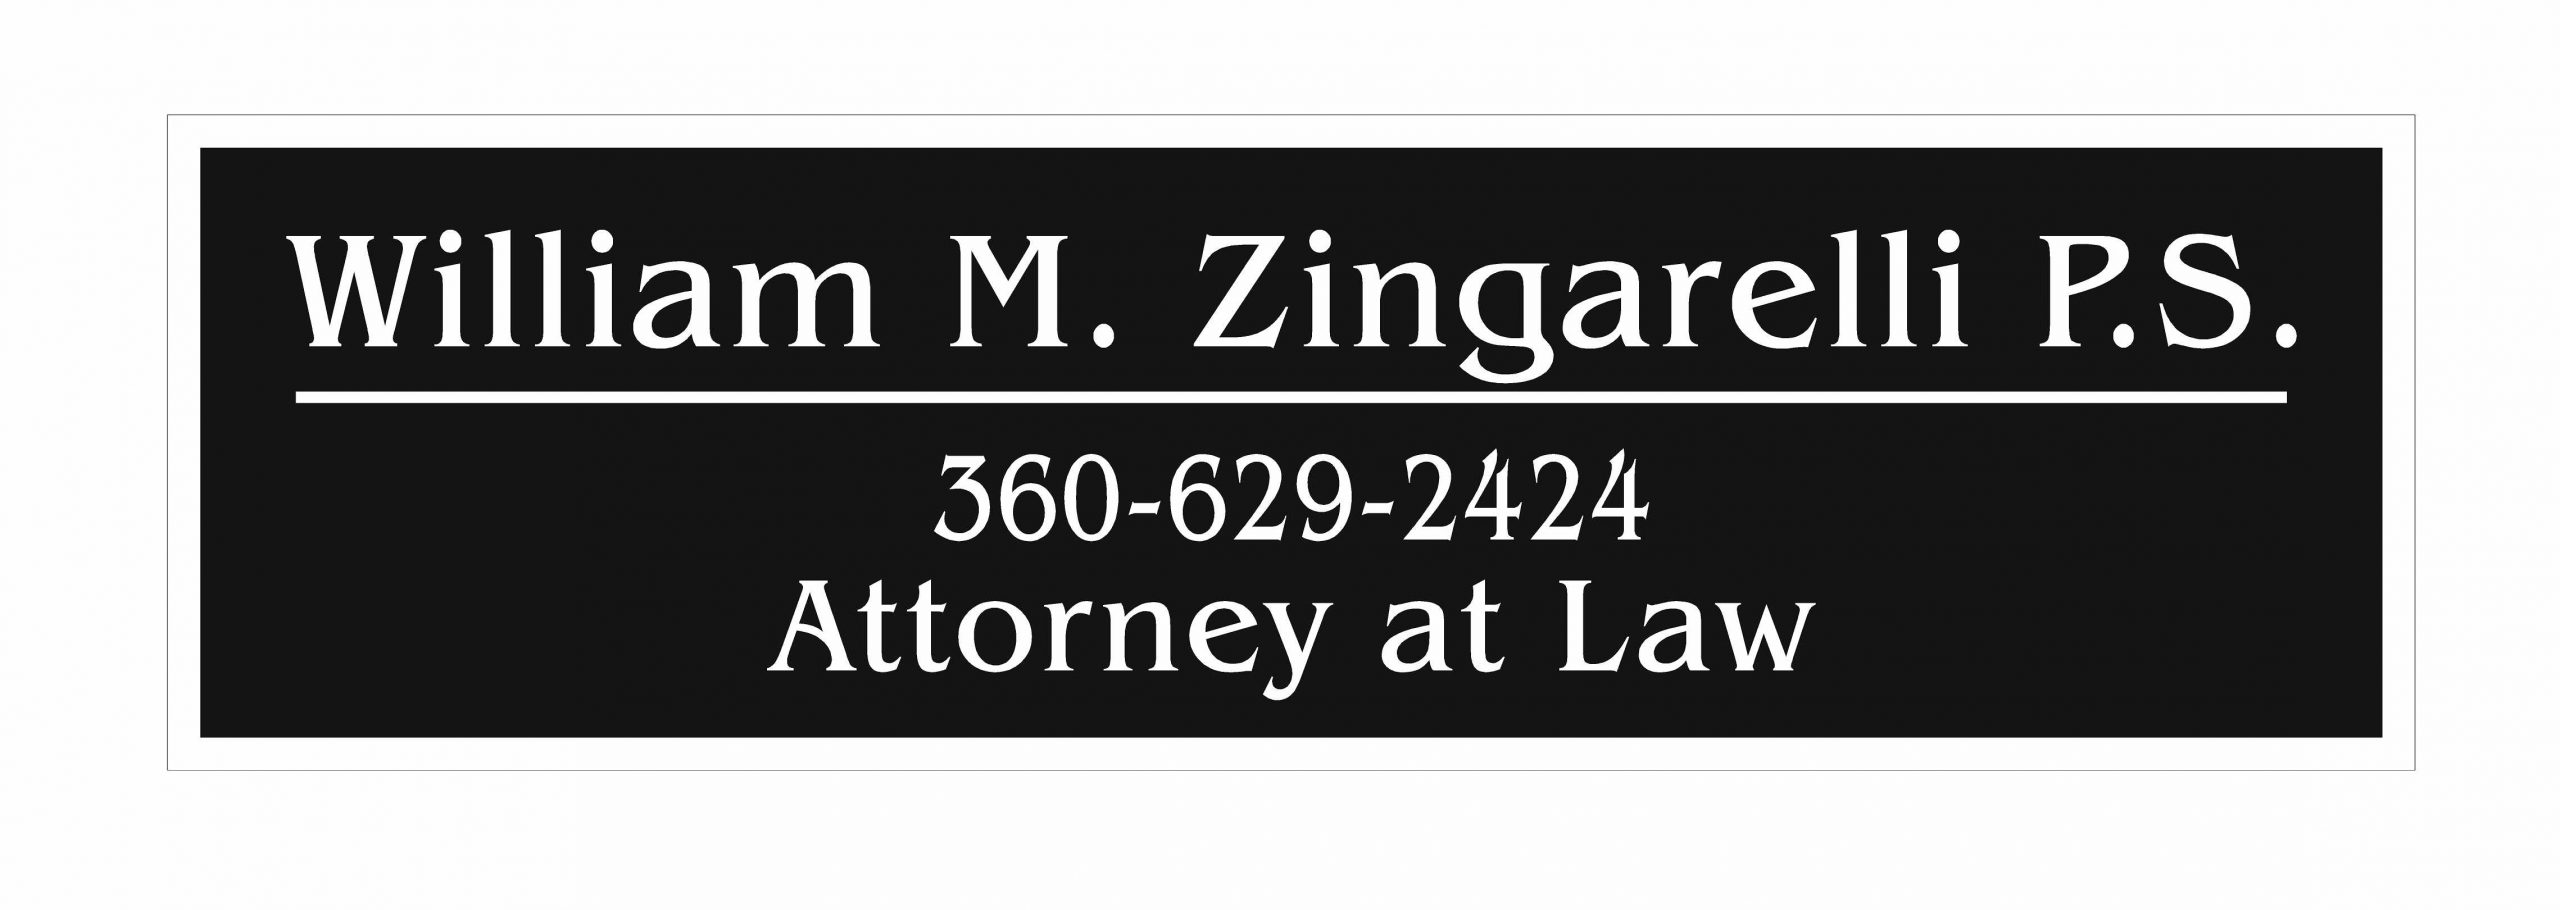 Zingarelli Attorney at Law logo